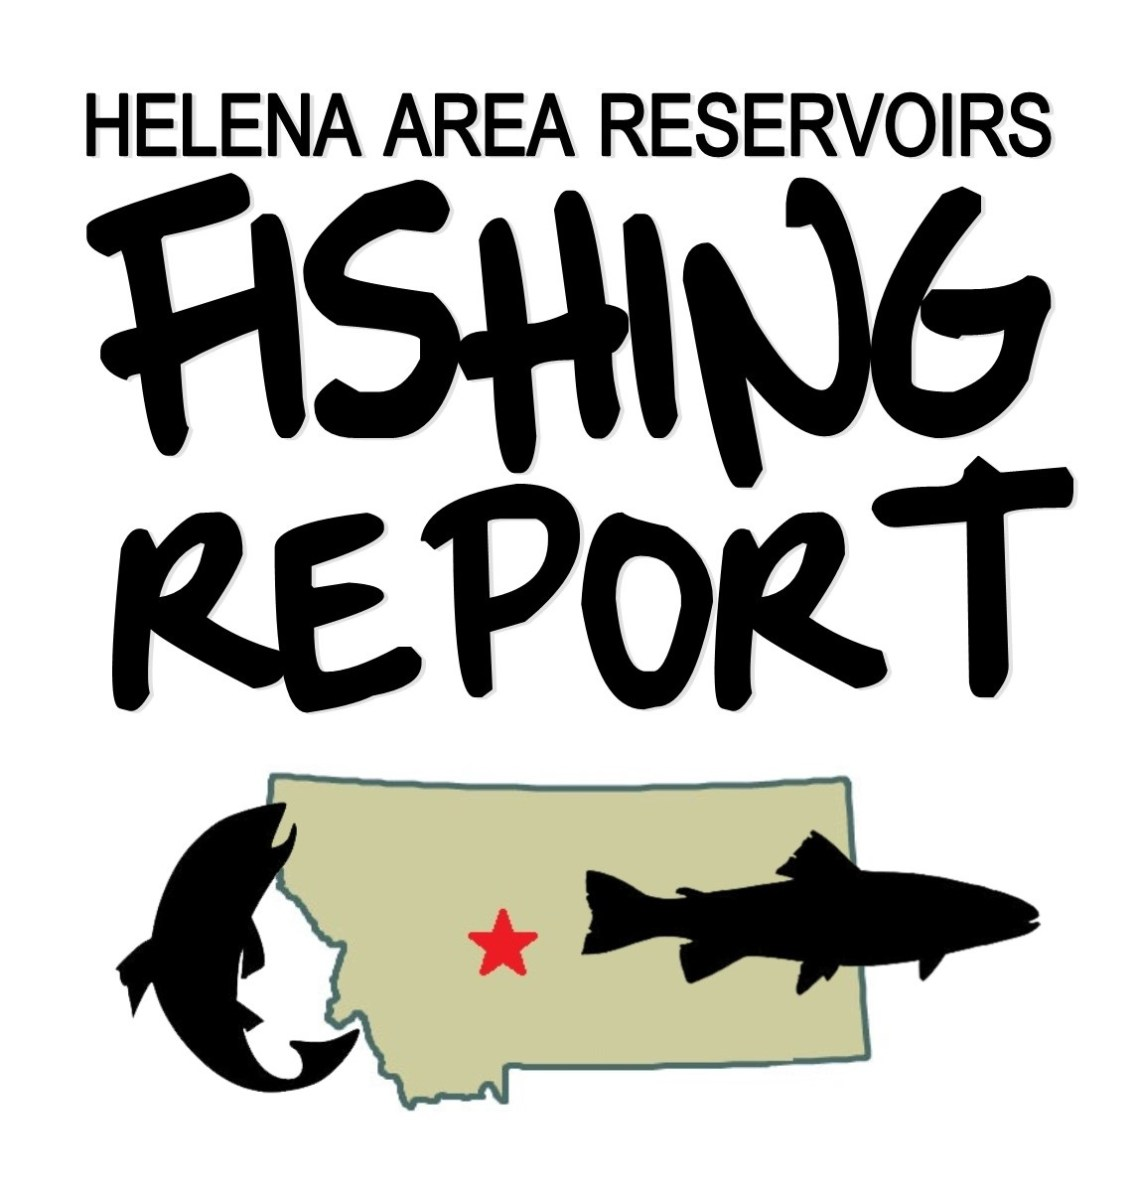 Helena Area Reservoirs Fishing Report for the Week of 9.1.14